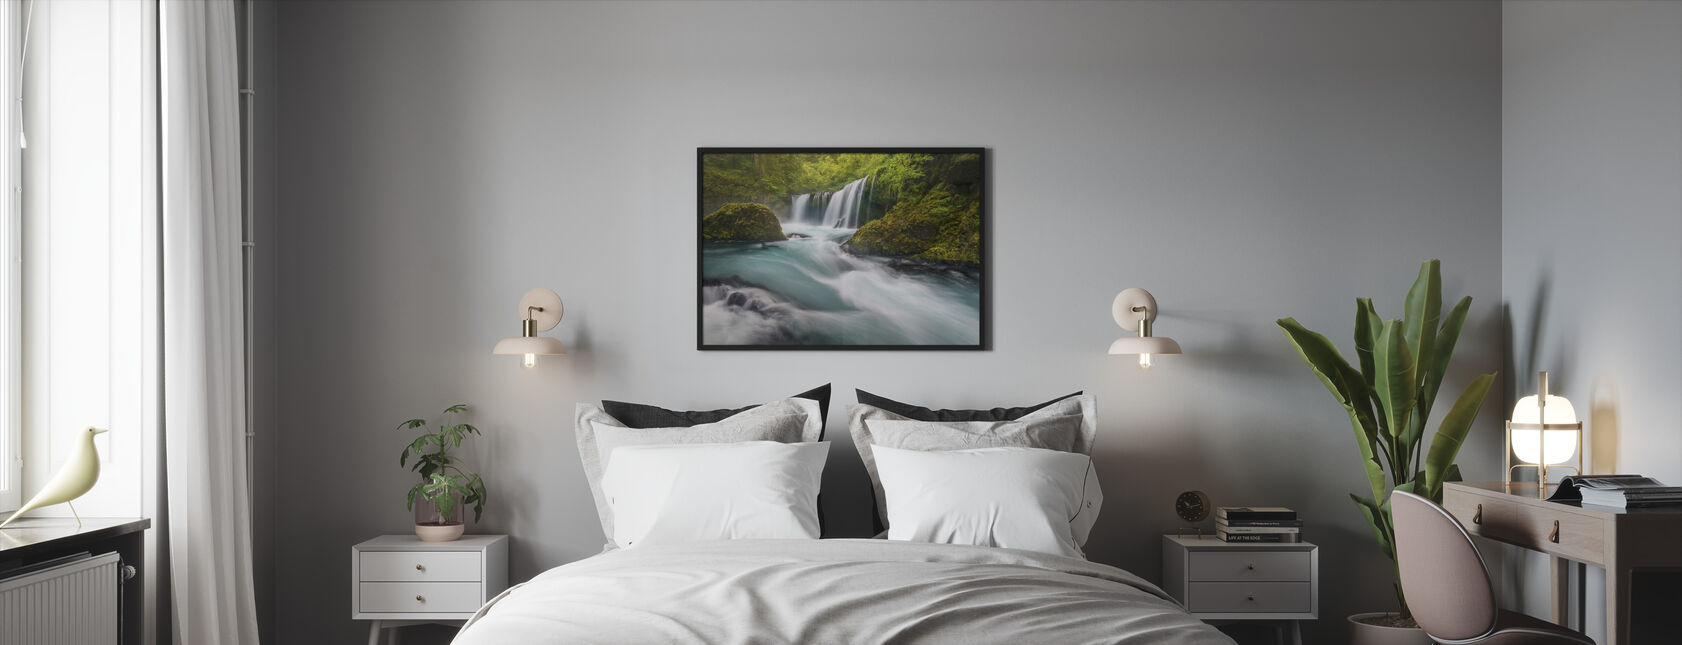 Spirit Falls - Framed print - Bedroom